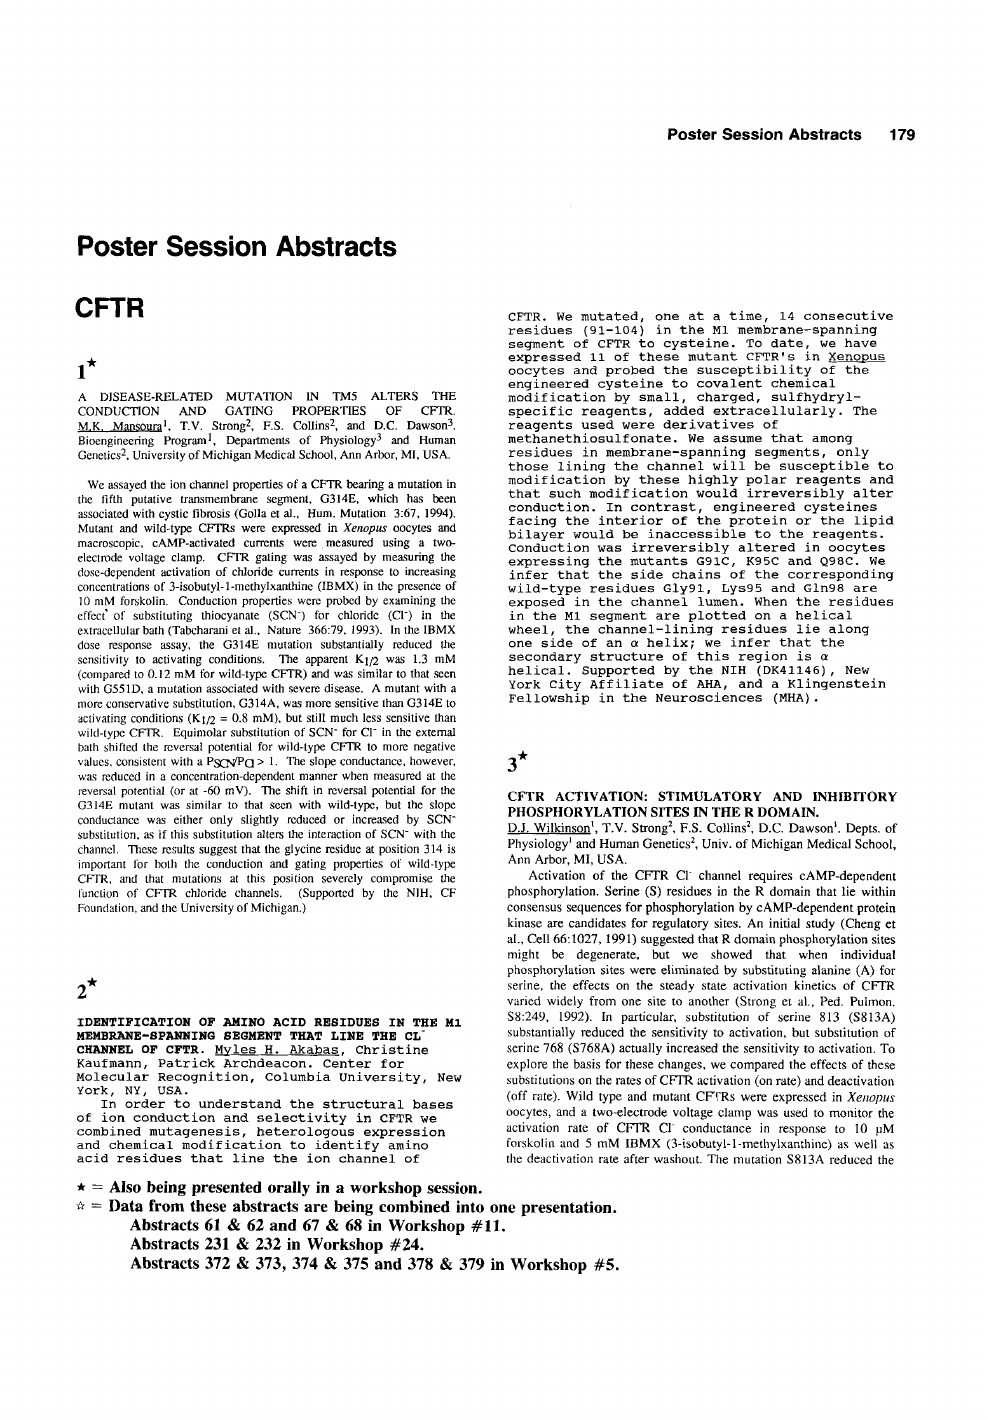 Poster session abstracts – topic of research paper in Biological ... 83343a878d1fe